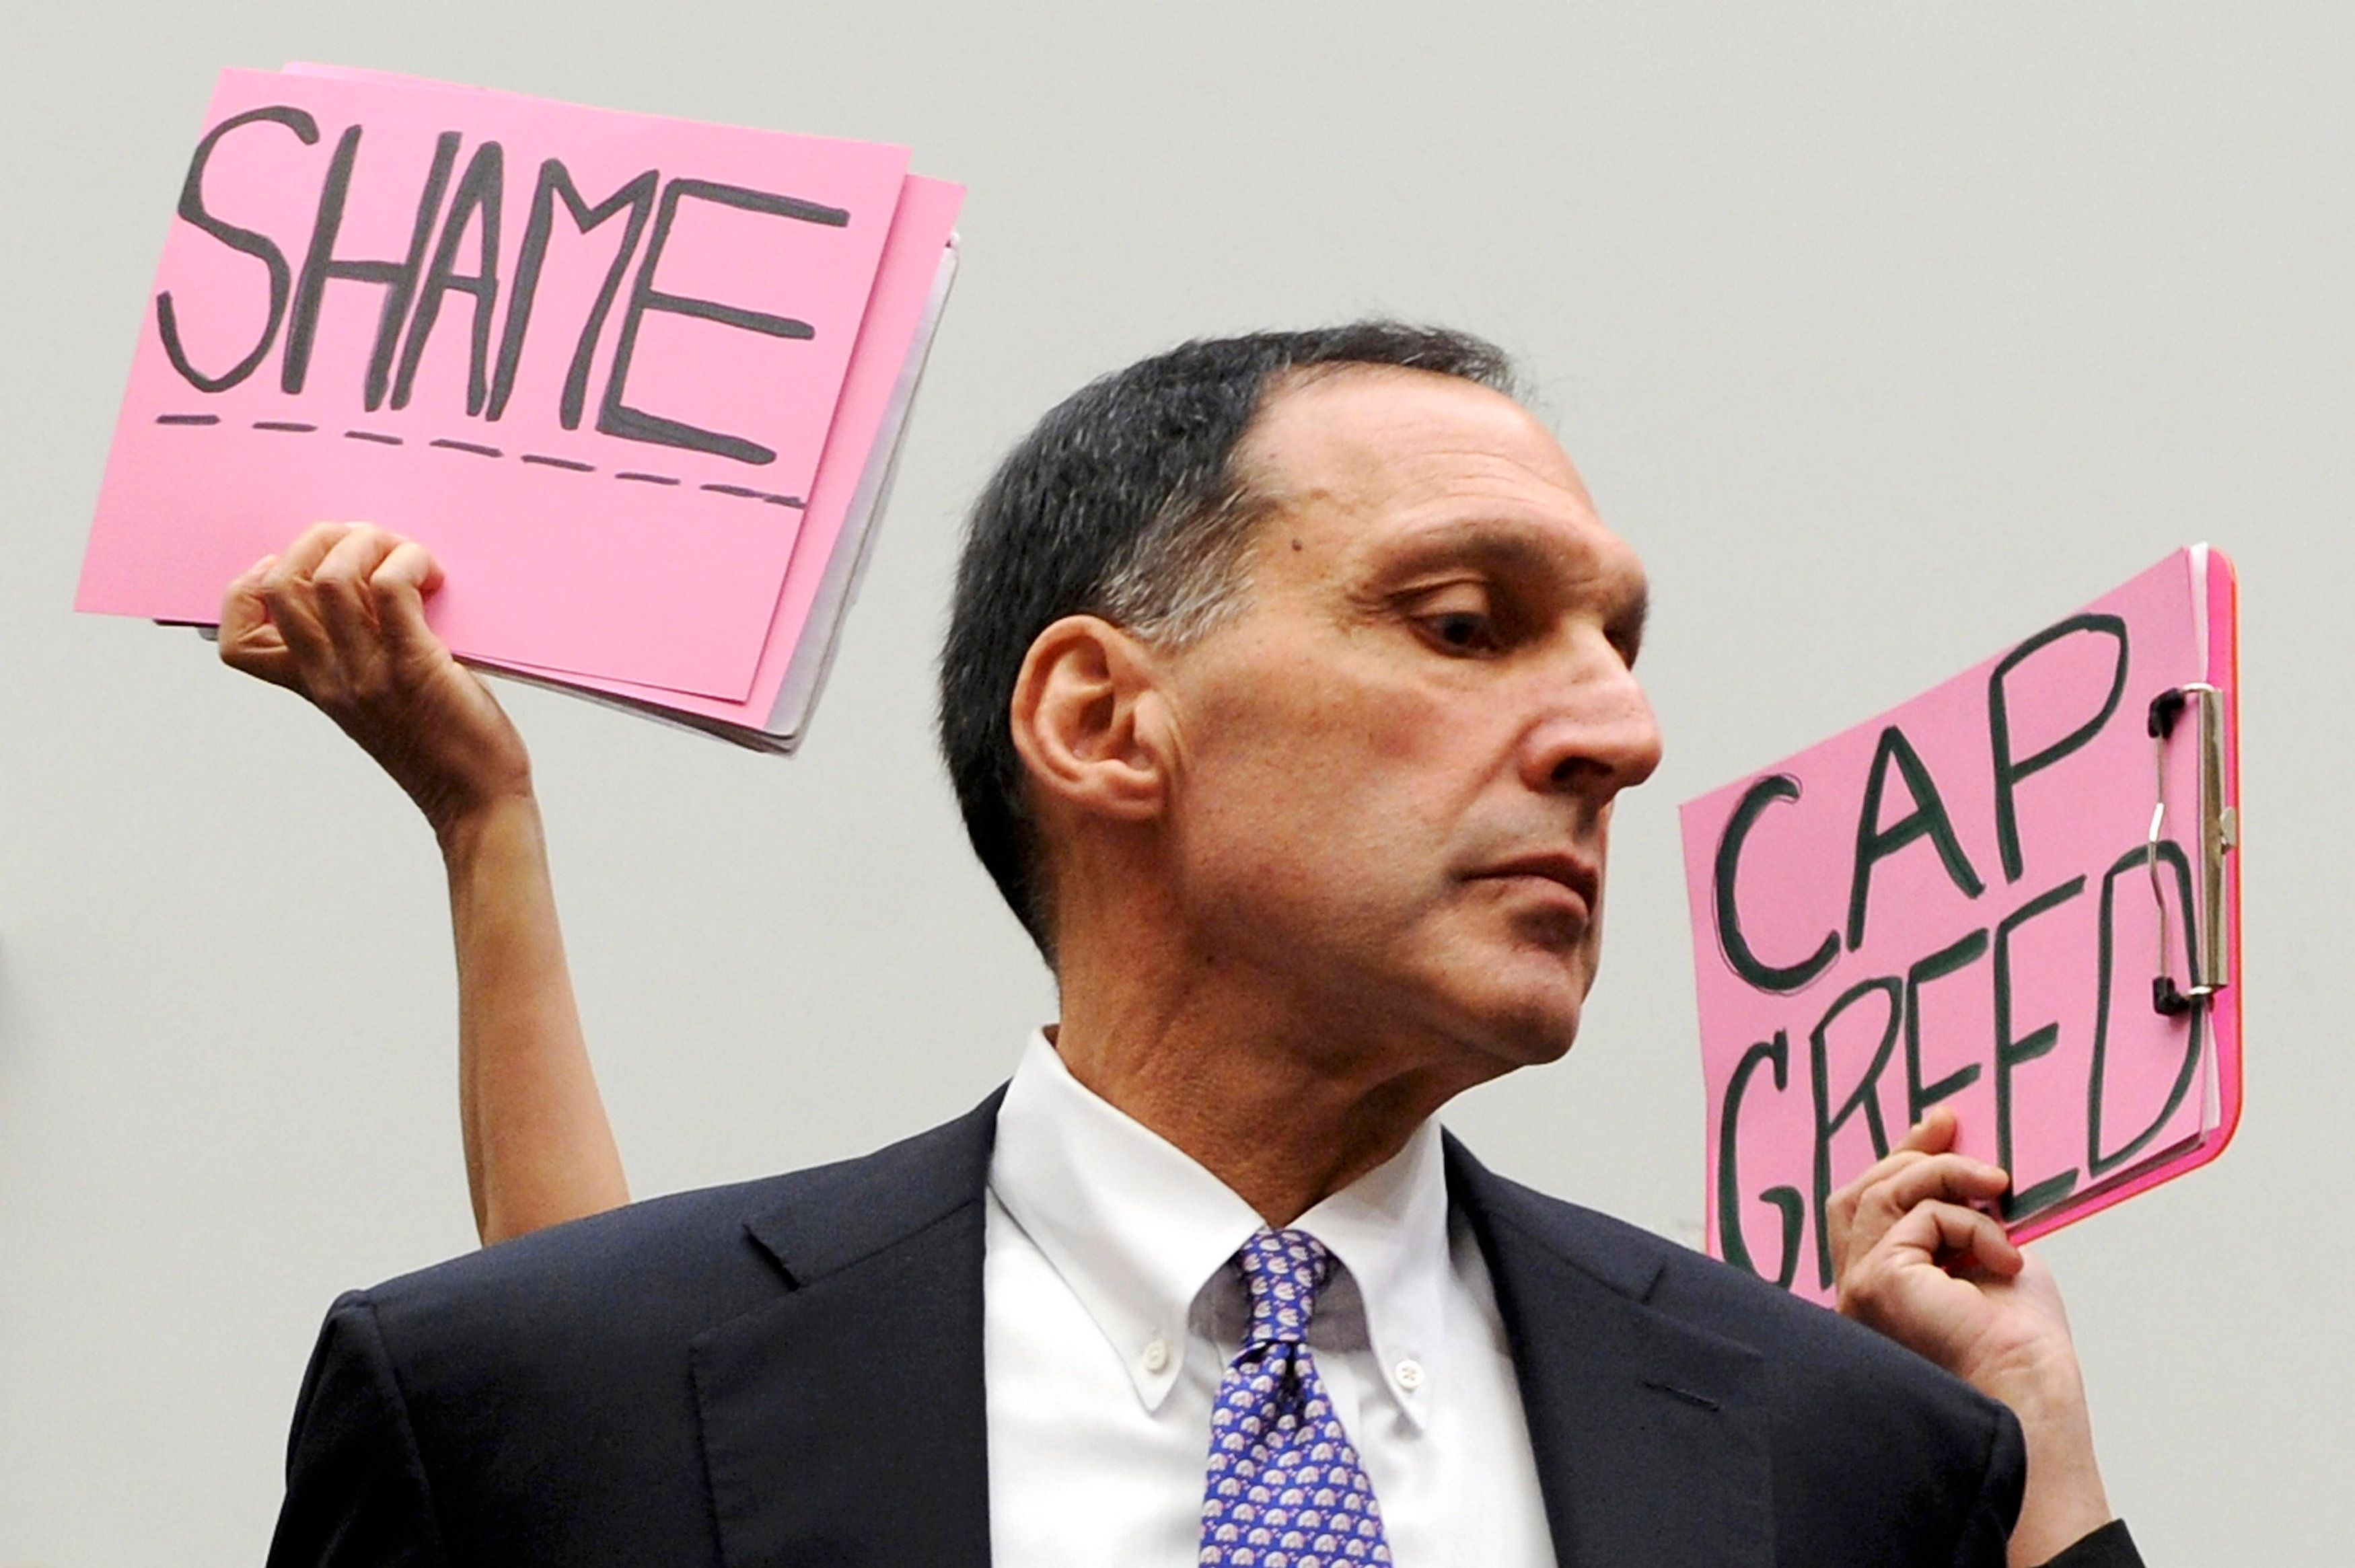 Protesters hold signs behind Dick Fuld at an October 2008 congressional hearing on the causes and effects of the Lehman